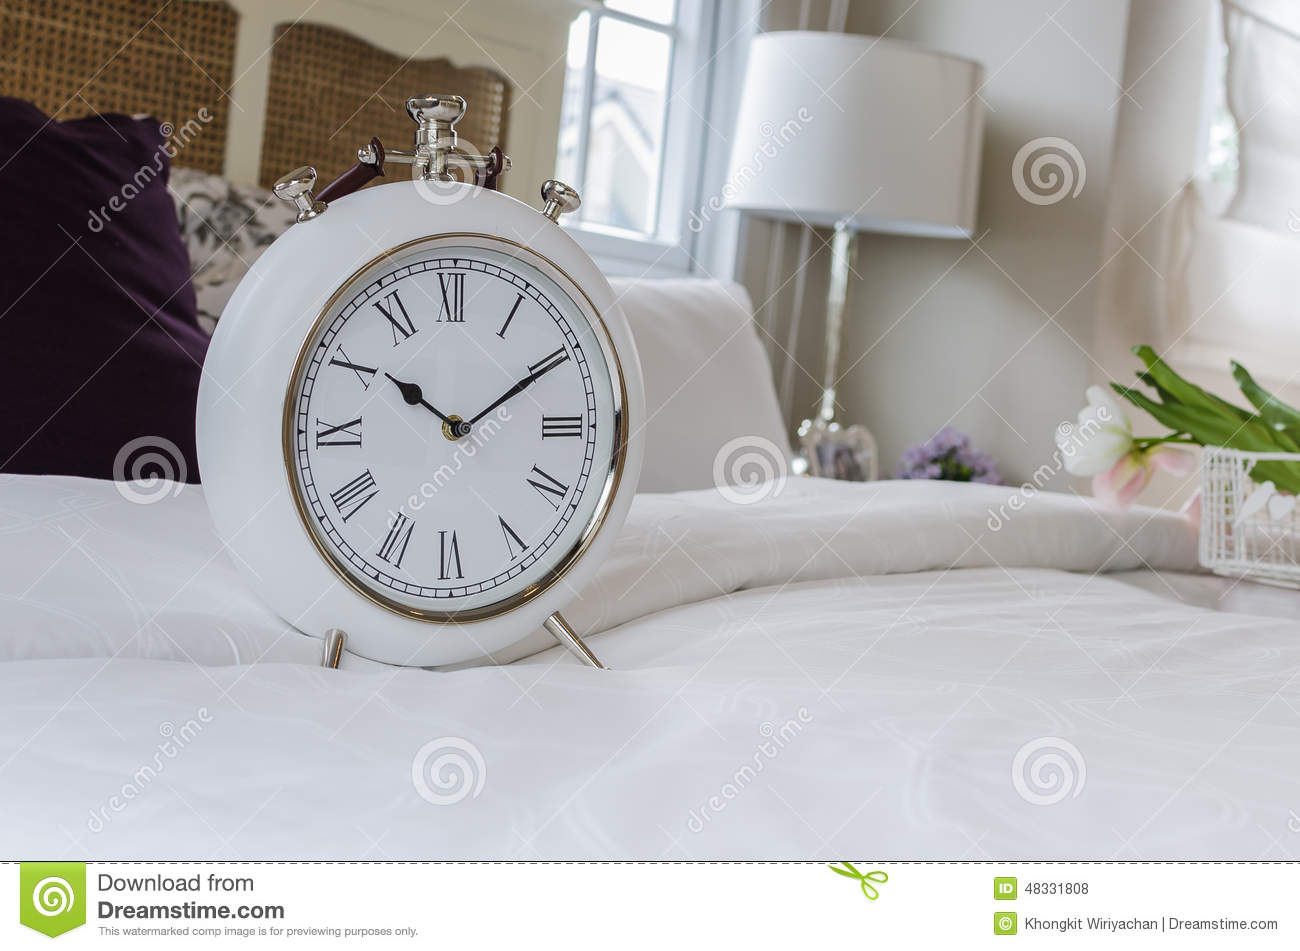 Classic White Alarm Clock Style In Classic Bedroom Stock Photo Image 48331808